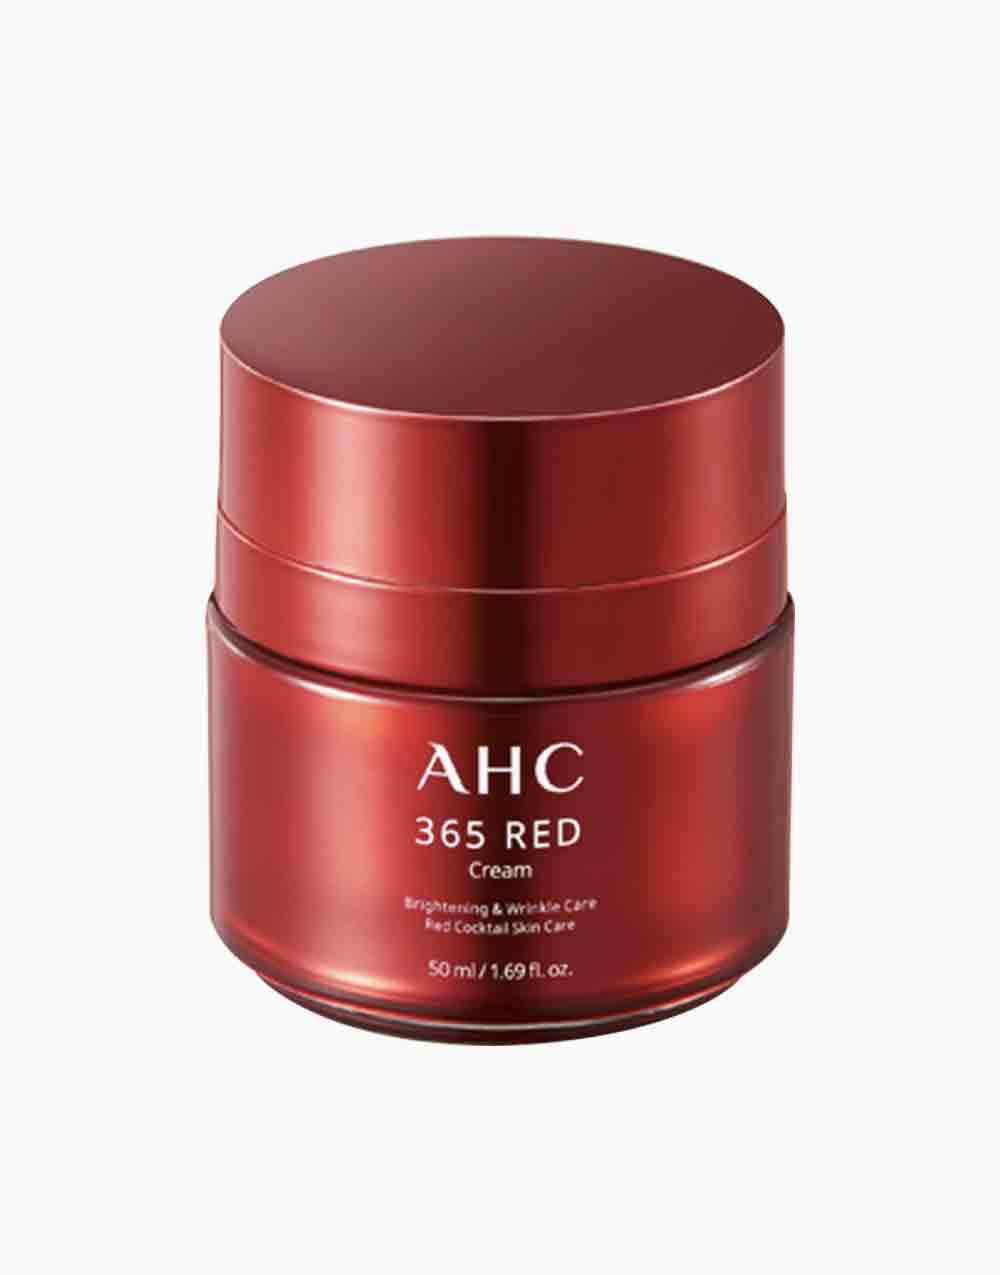 365 Red Cream (50ml) by AHC